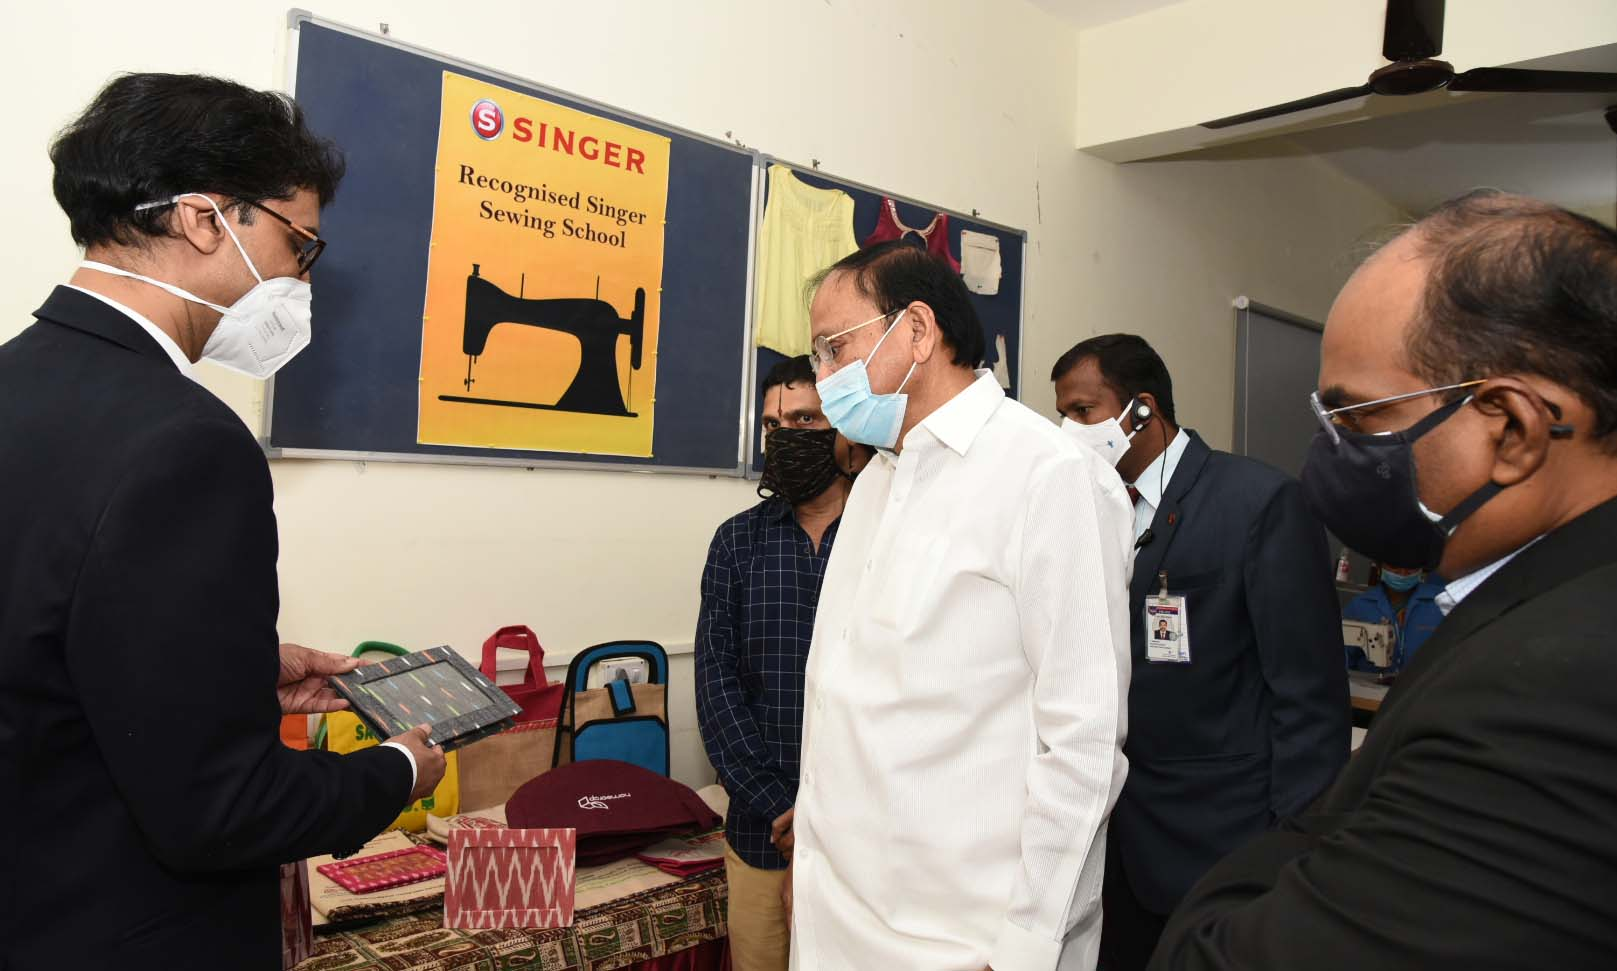 The Vice President, Shri M. Venkaiah Naidu during a visit to GMR Varalakshmi Foundation's Centre for Empowerment and Livelihoods in Hyderabad on August 1, 2021